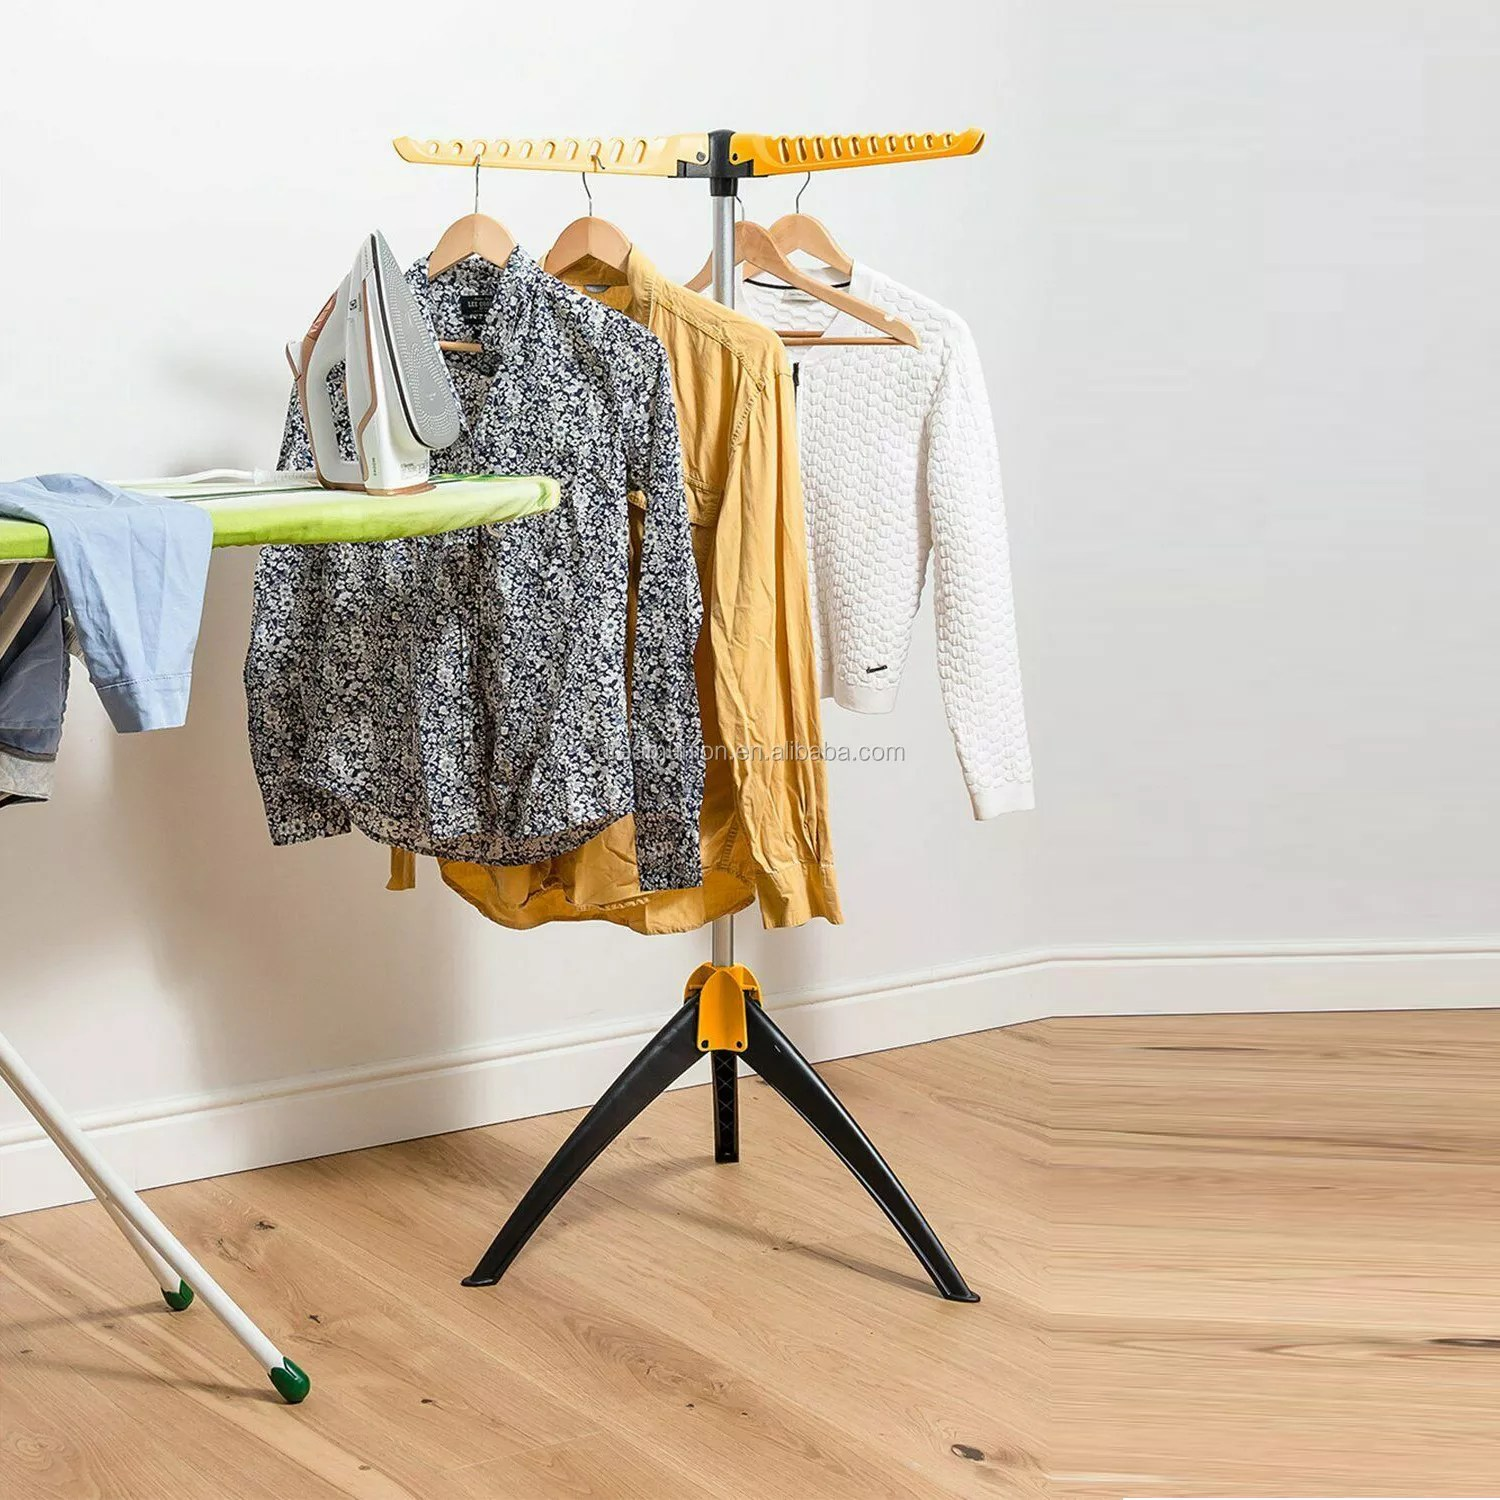 tripod collapsible portable clothes drying rack foldable hanger organizer stand buy tripod standing clothes hanger product on alibaba com